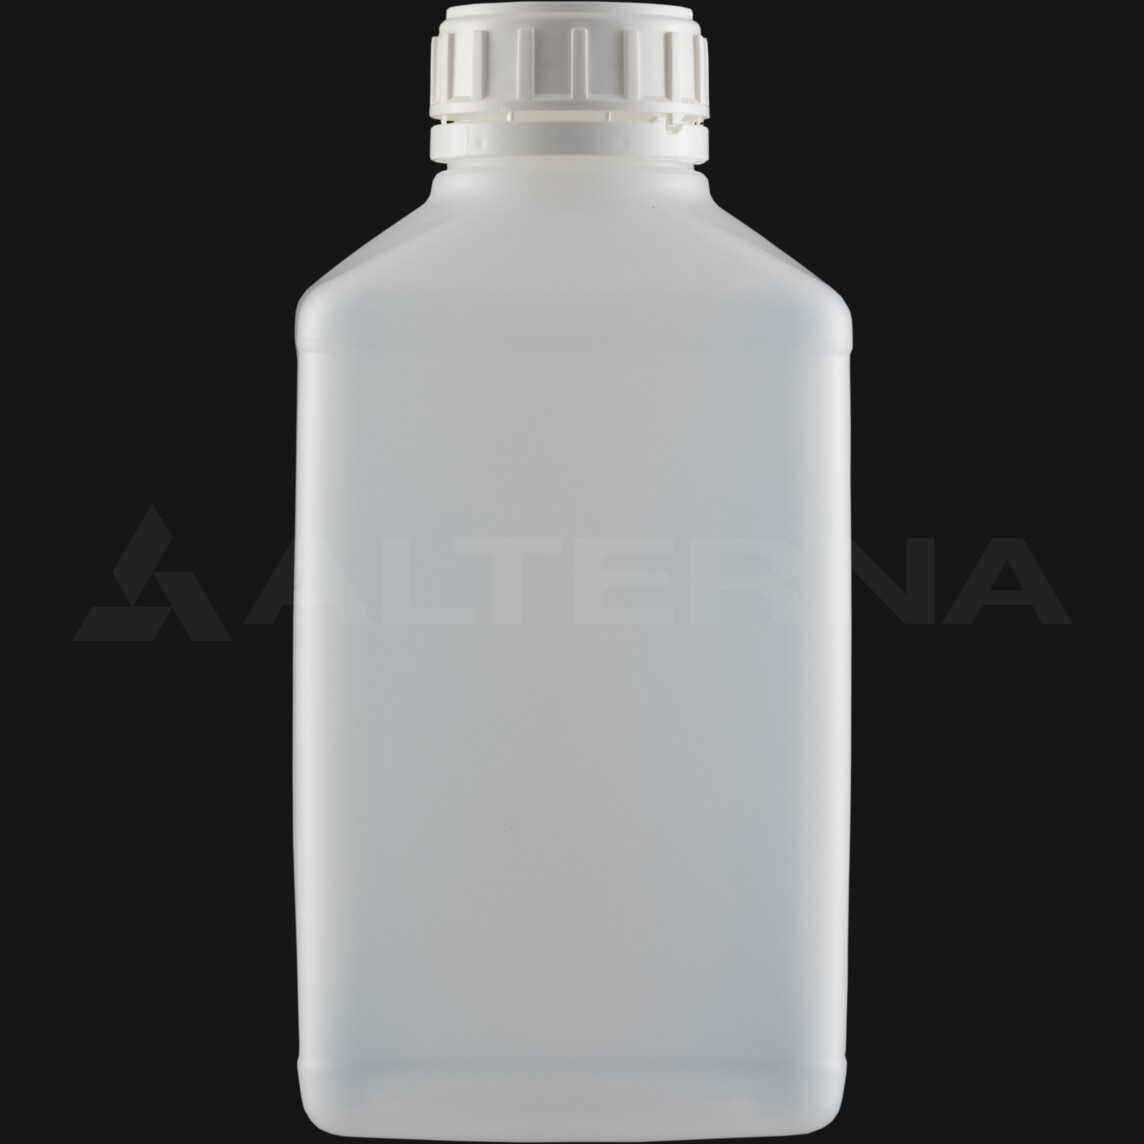 1000 ml HDPE Rectangular Bottle with 50 mm Foam Seal Secure Cap